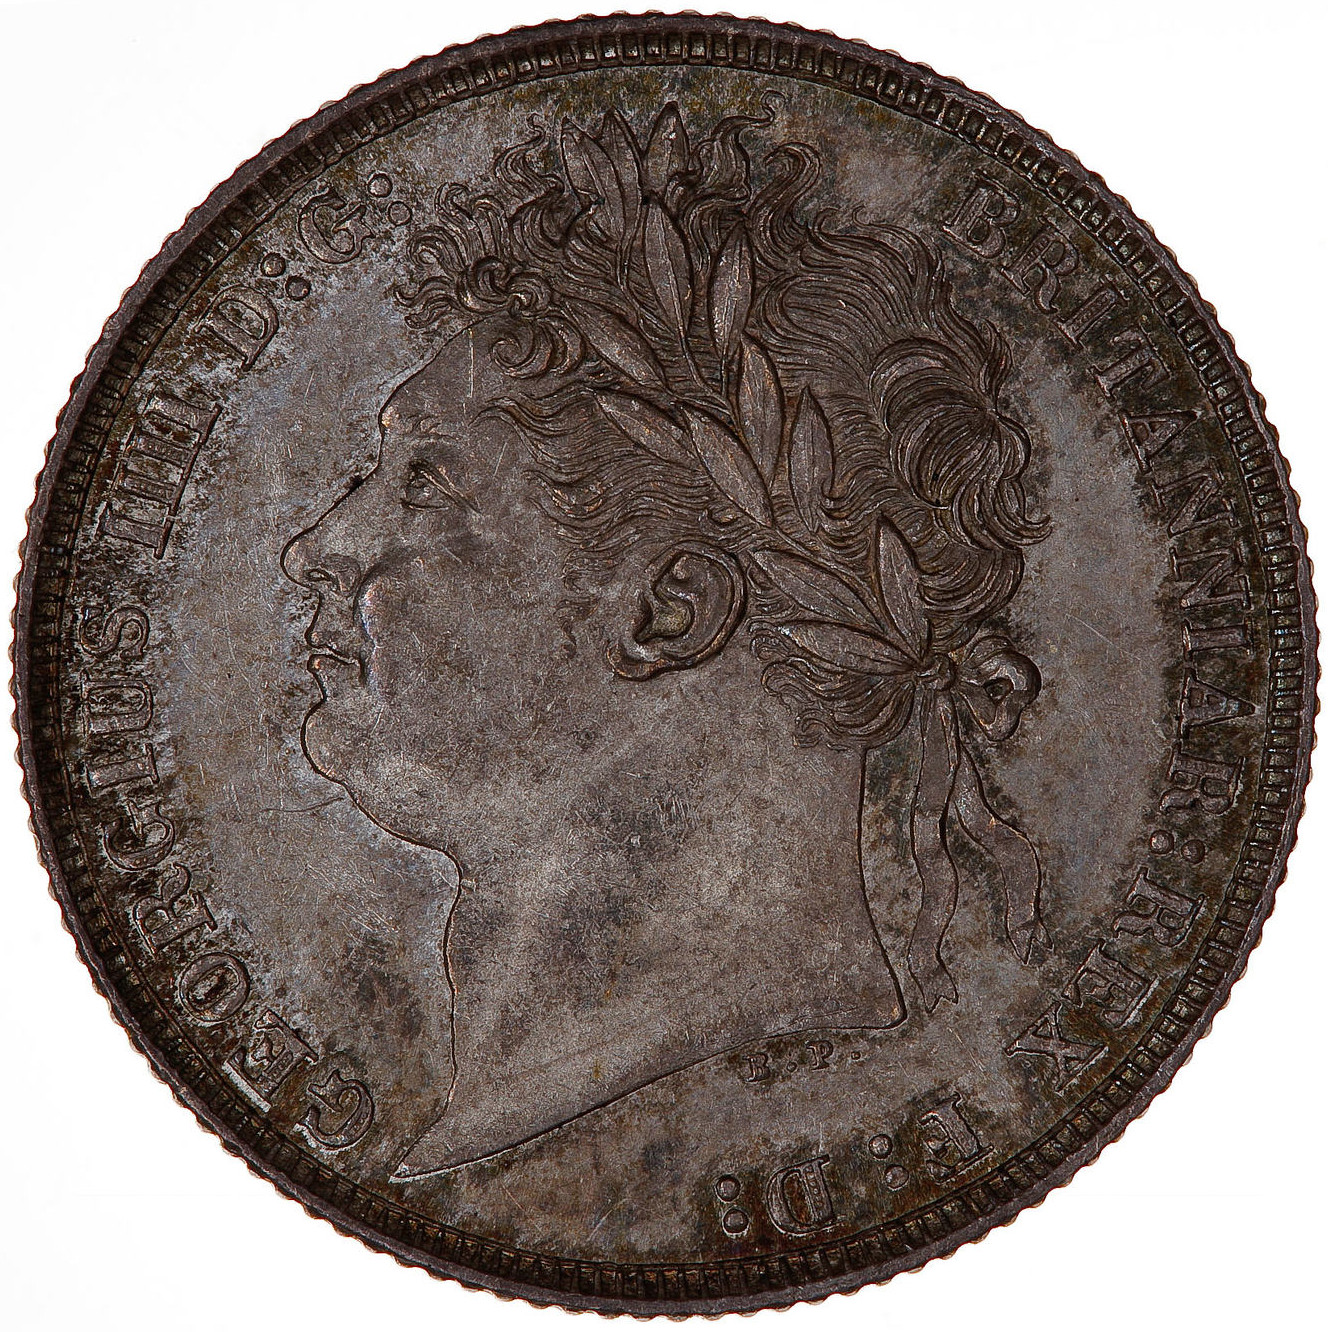 Shilling: Photo Coin - Shilling, George IV, Great Britain, 1821